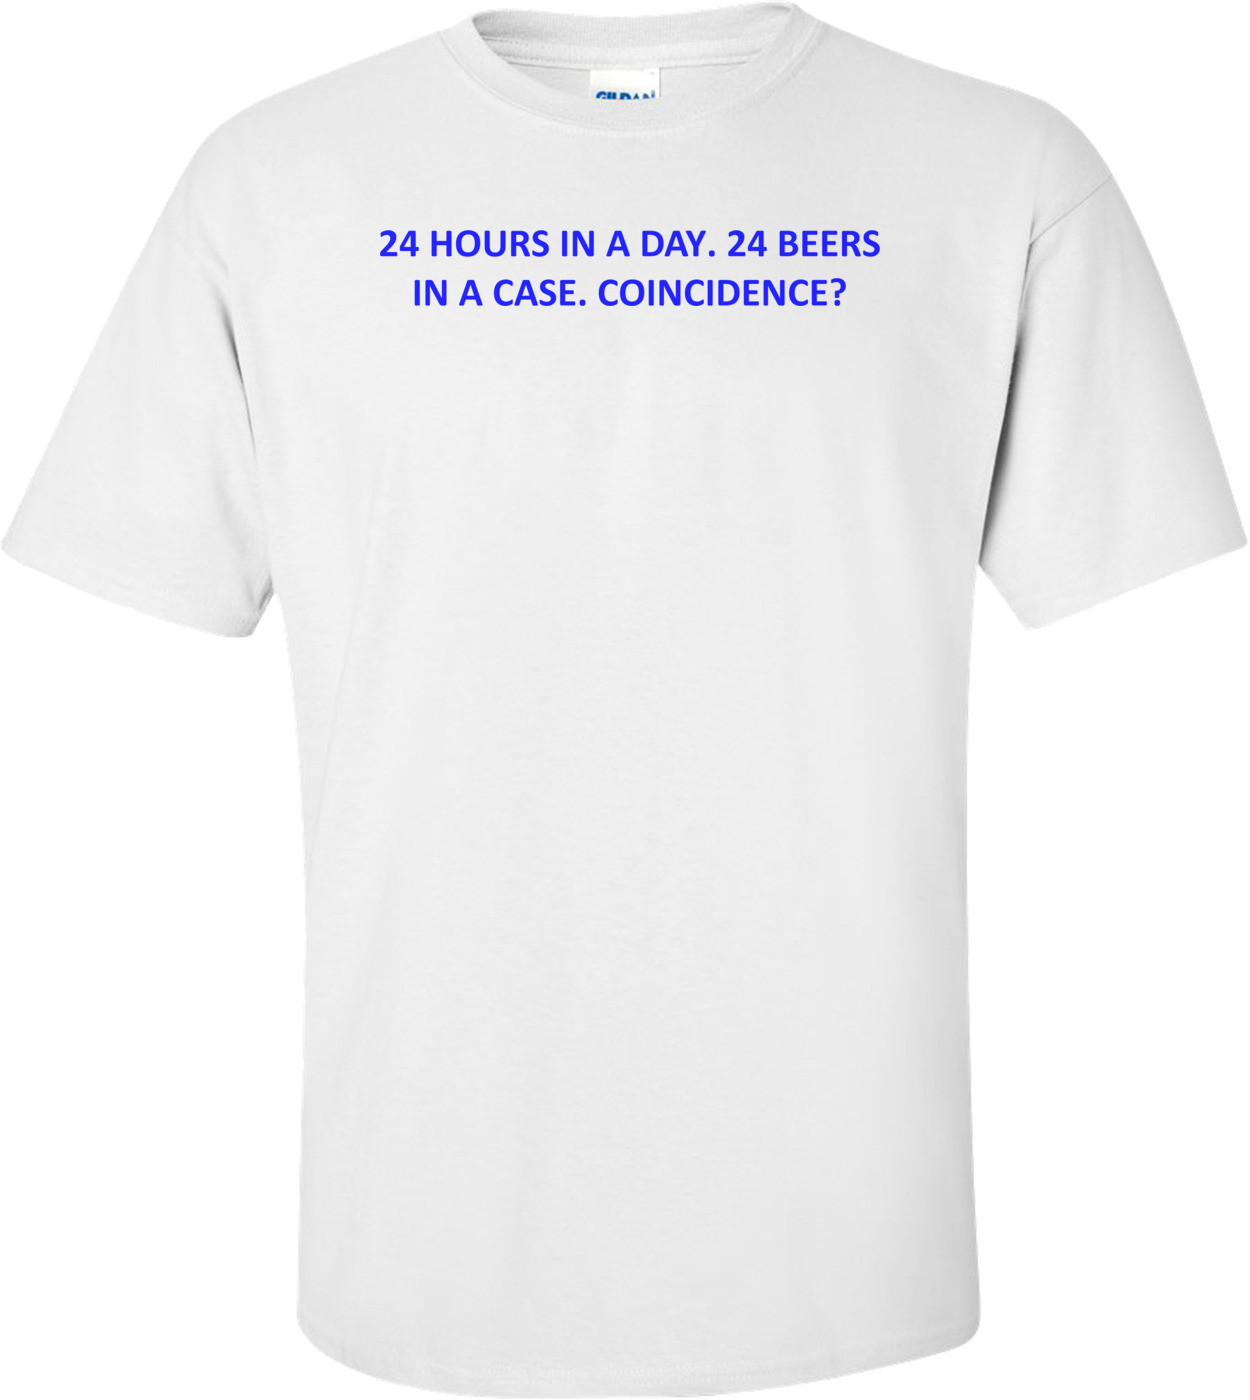 24 HOURS IN A DAY. 24 BEERS IN A CASE. COINCIDENCE? Shirt